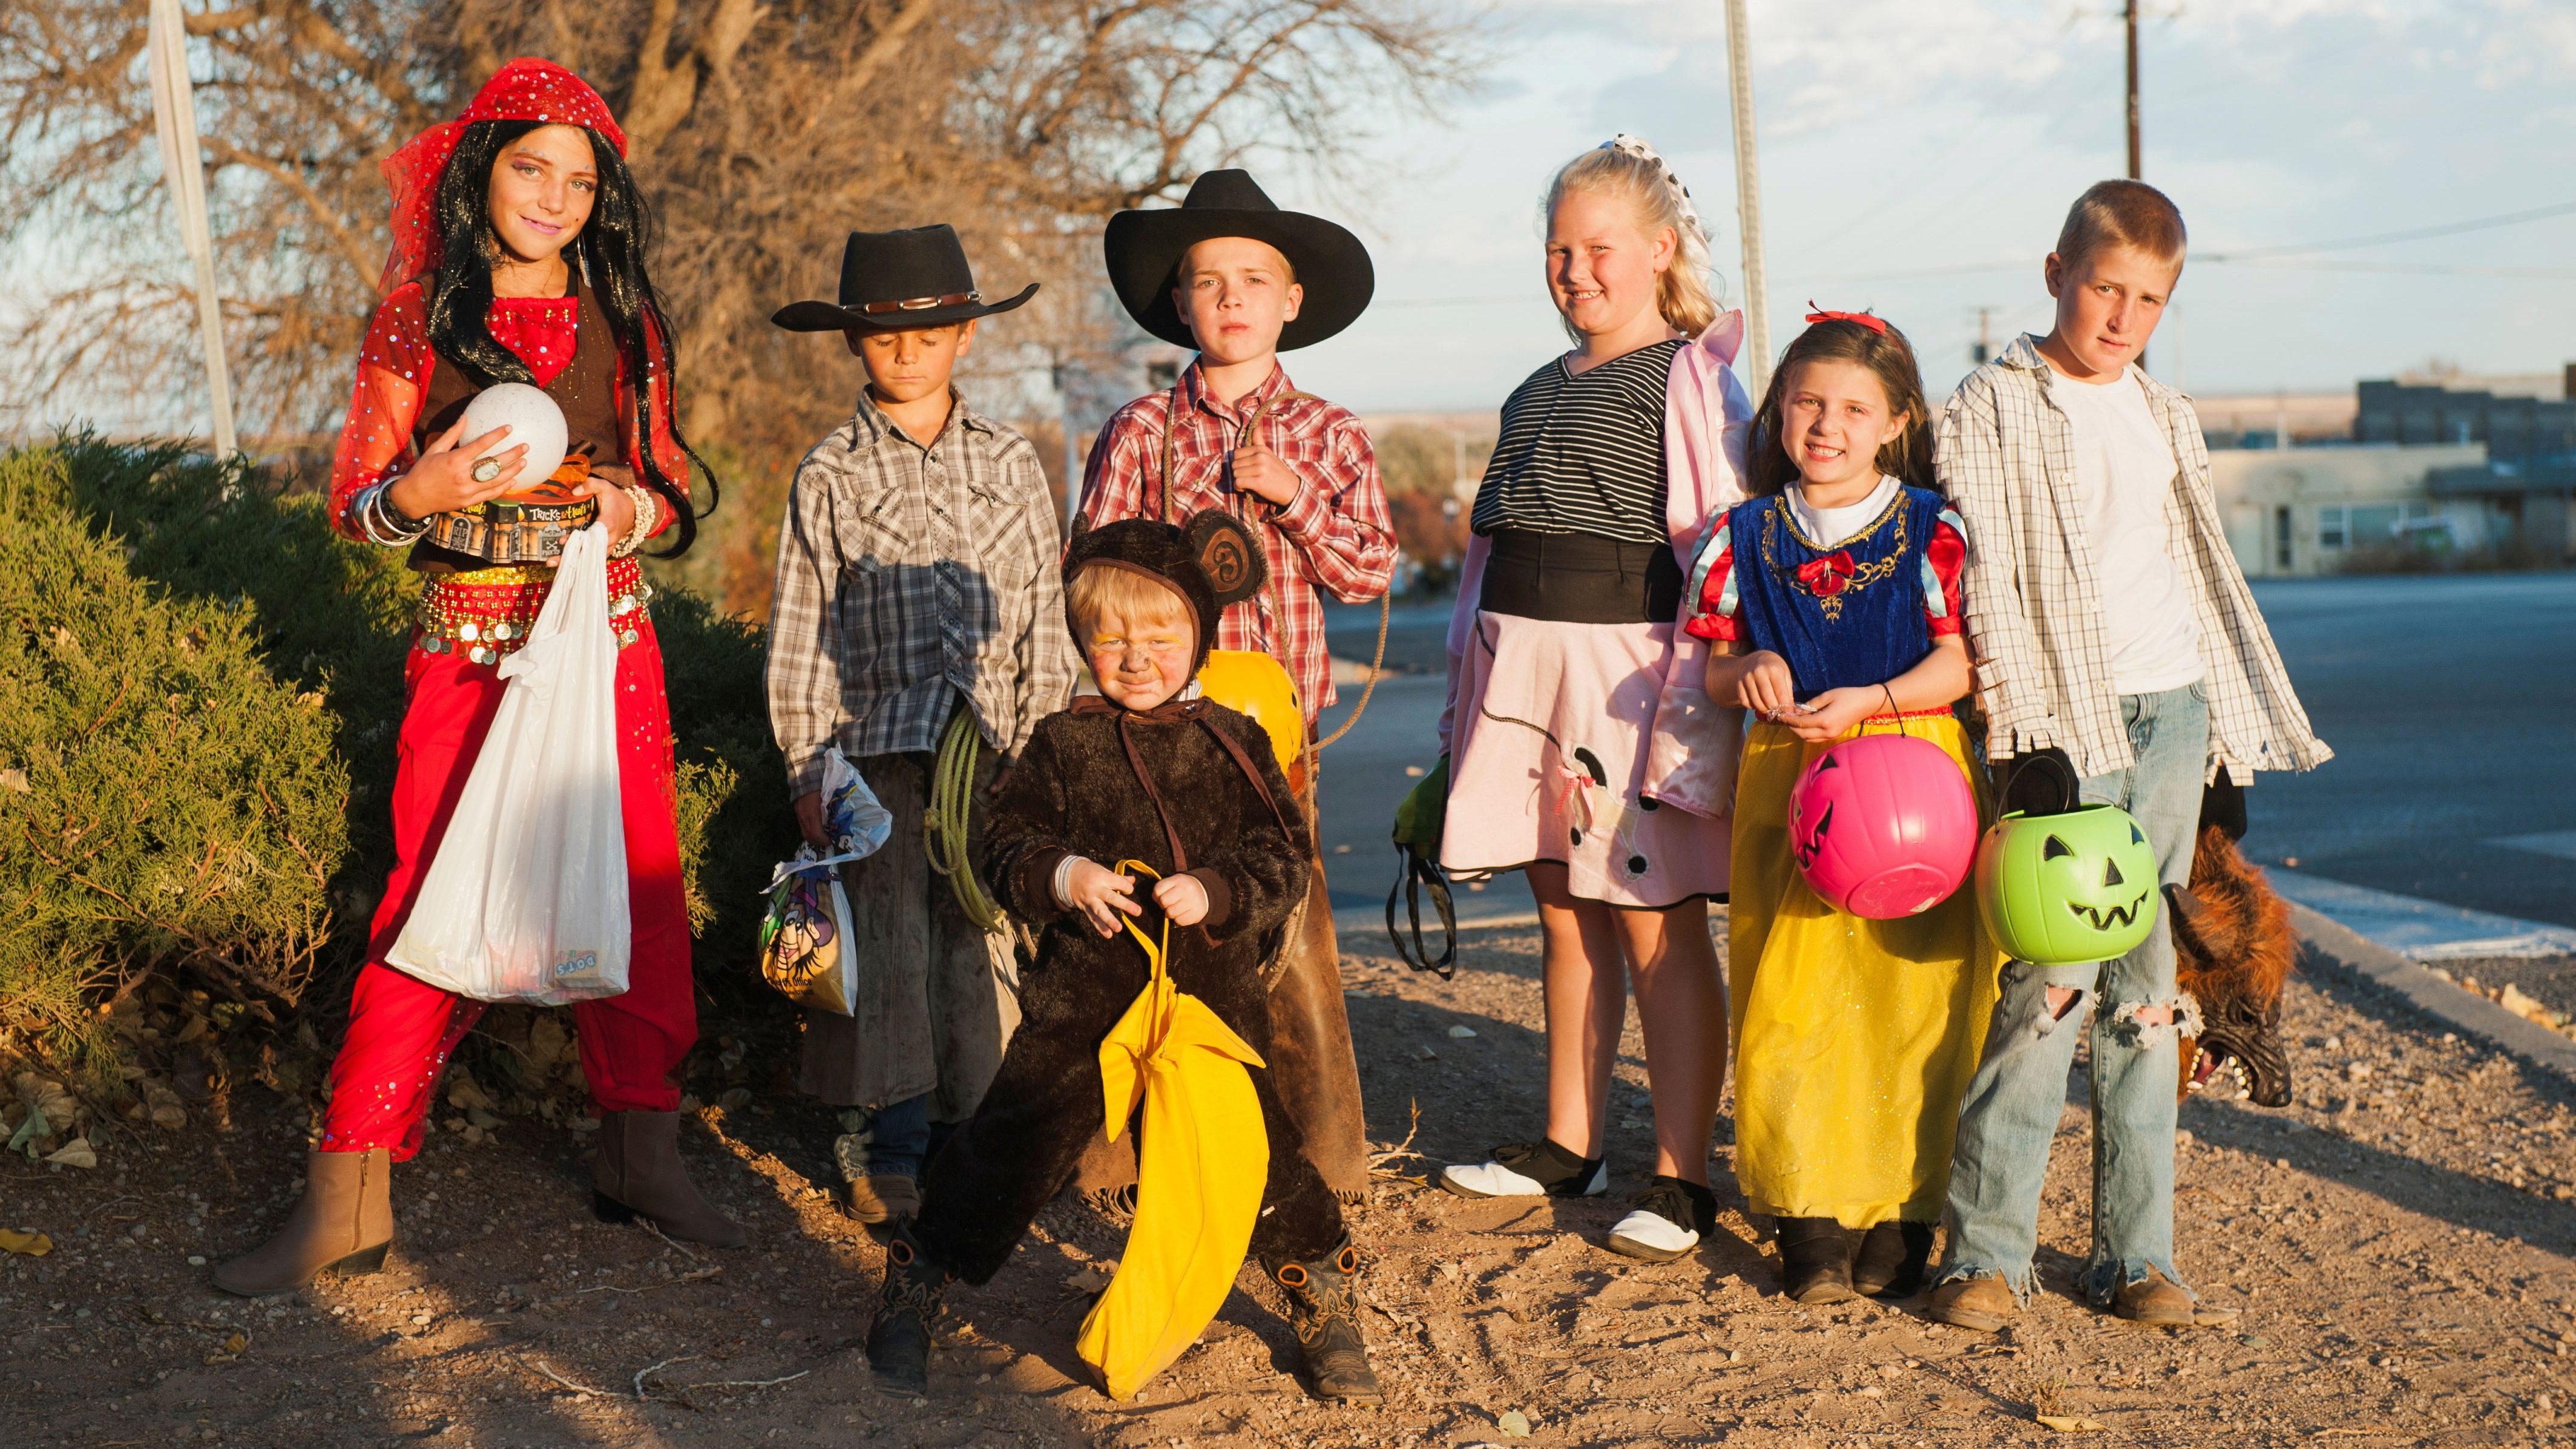 this halloween, some us towns will ban teens from trick-or-treating